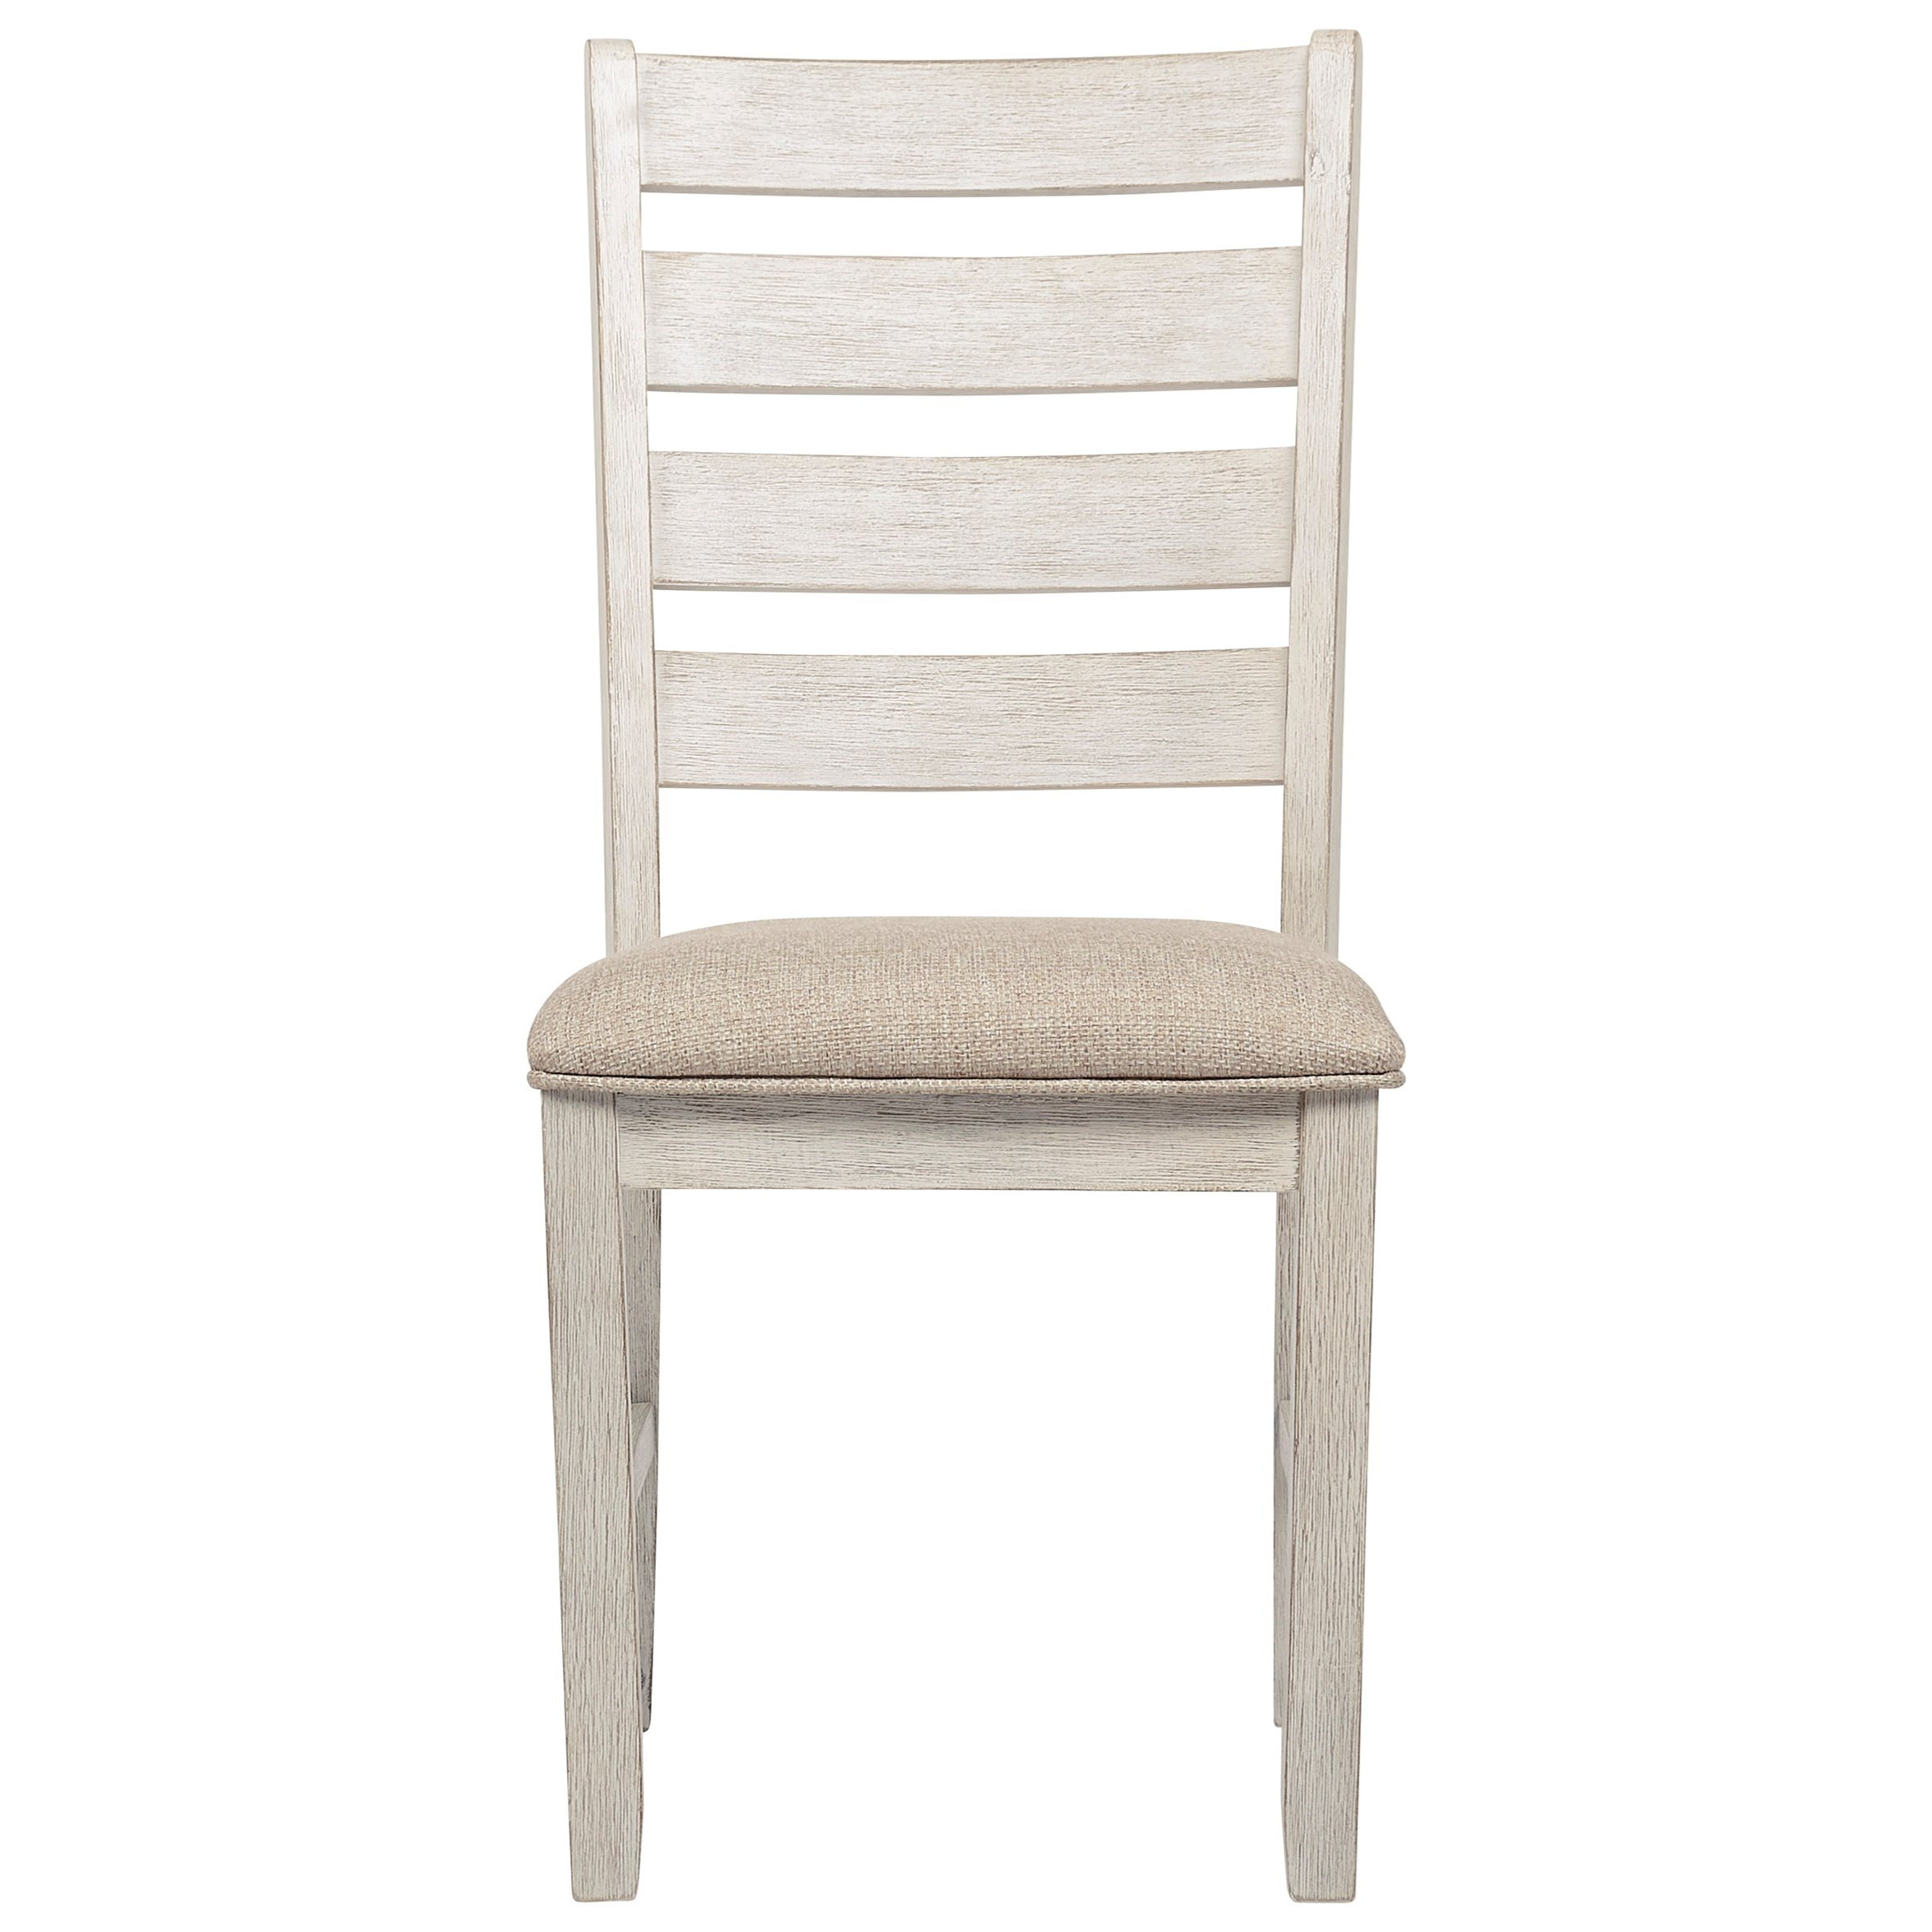 Skempton Dining Upholstered Side Chair by Signature Design by Ashley at Miller Home